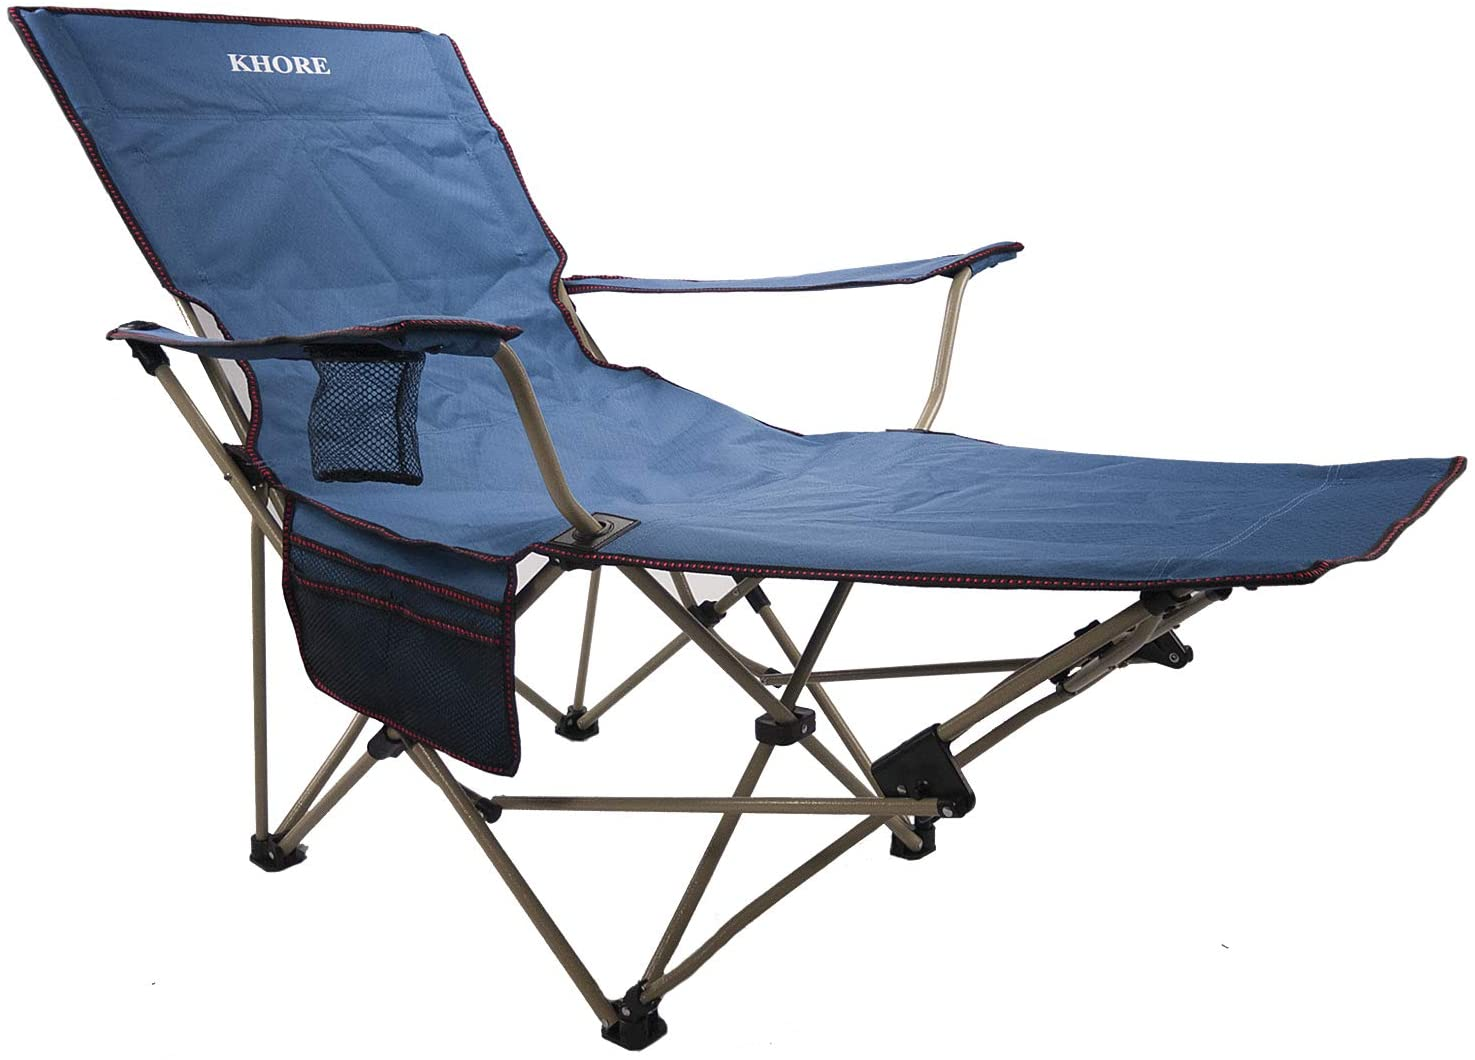 Khore Automatically Adjustable Recliner